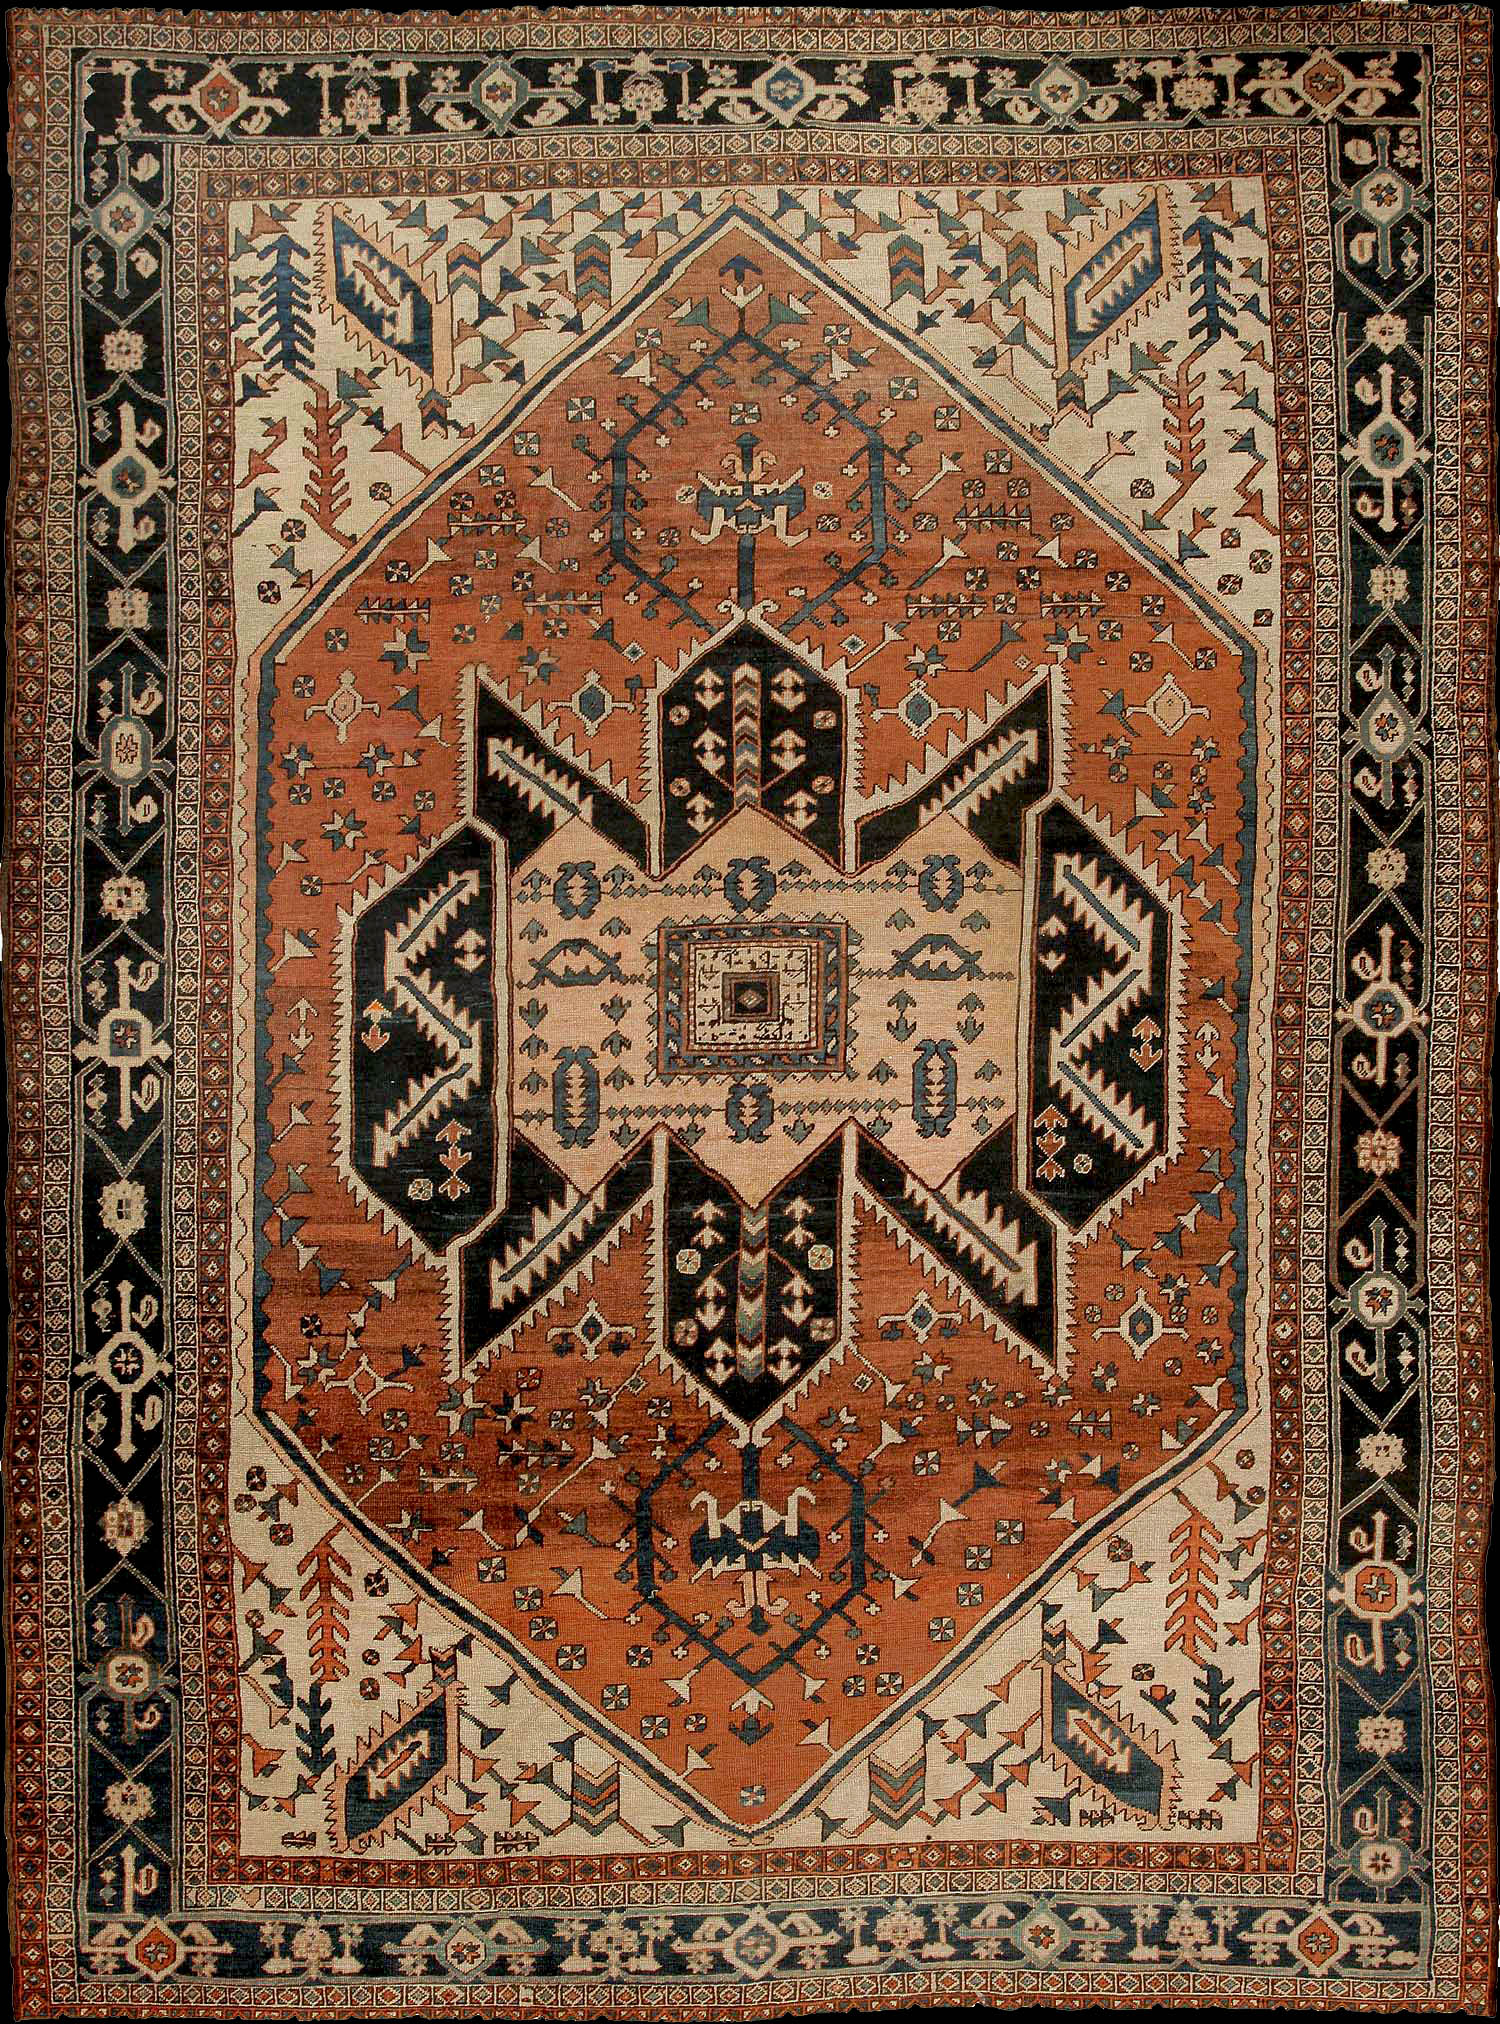 Antique Serapi Rug, Azerbaijan, NW Iran, 19th Century, 10 Ft 07 In X 14 Ft  09 In (3.23 M X 4.50 M), Nazmiyal Collection.